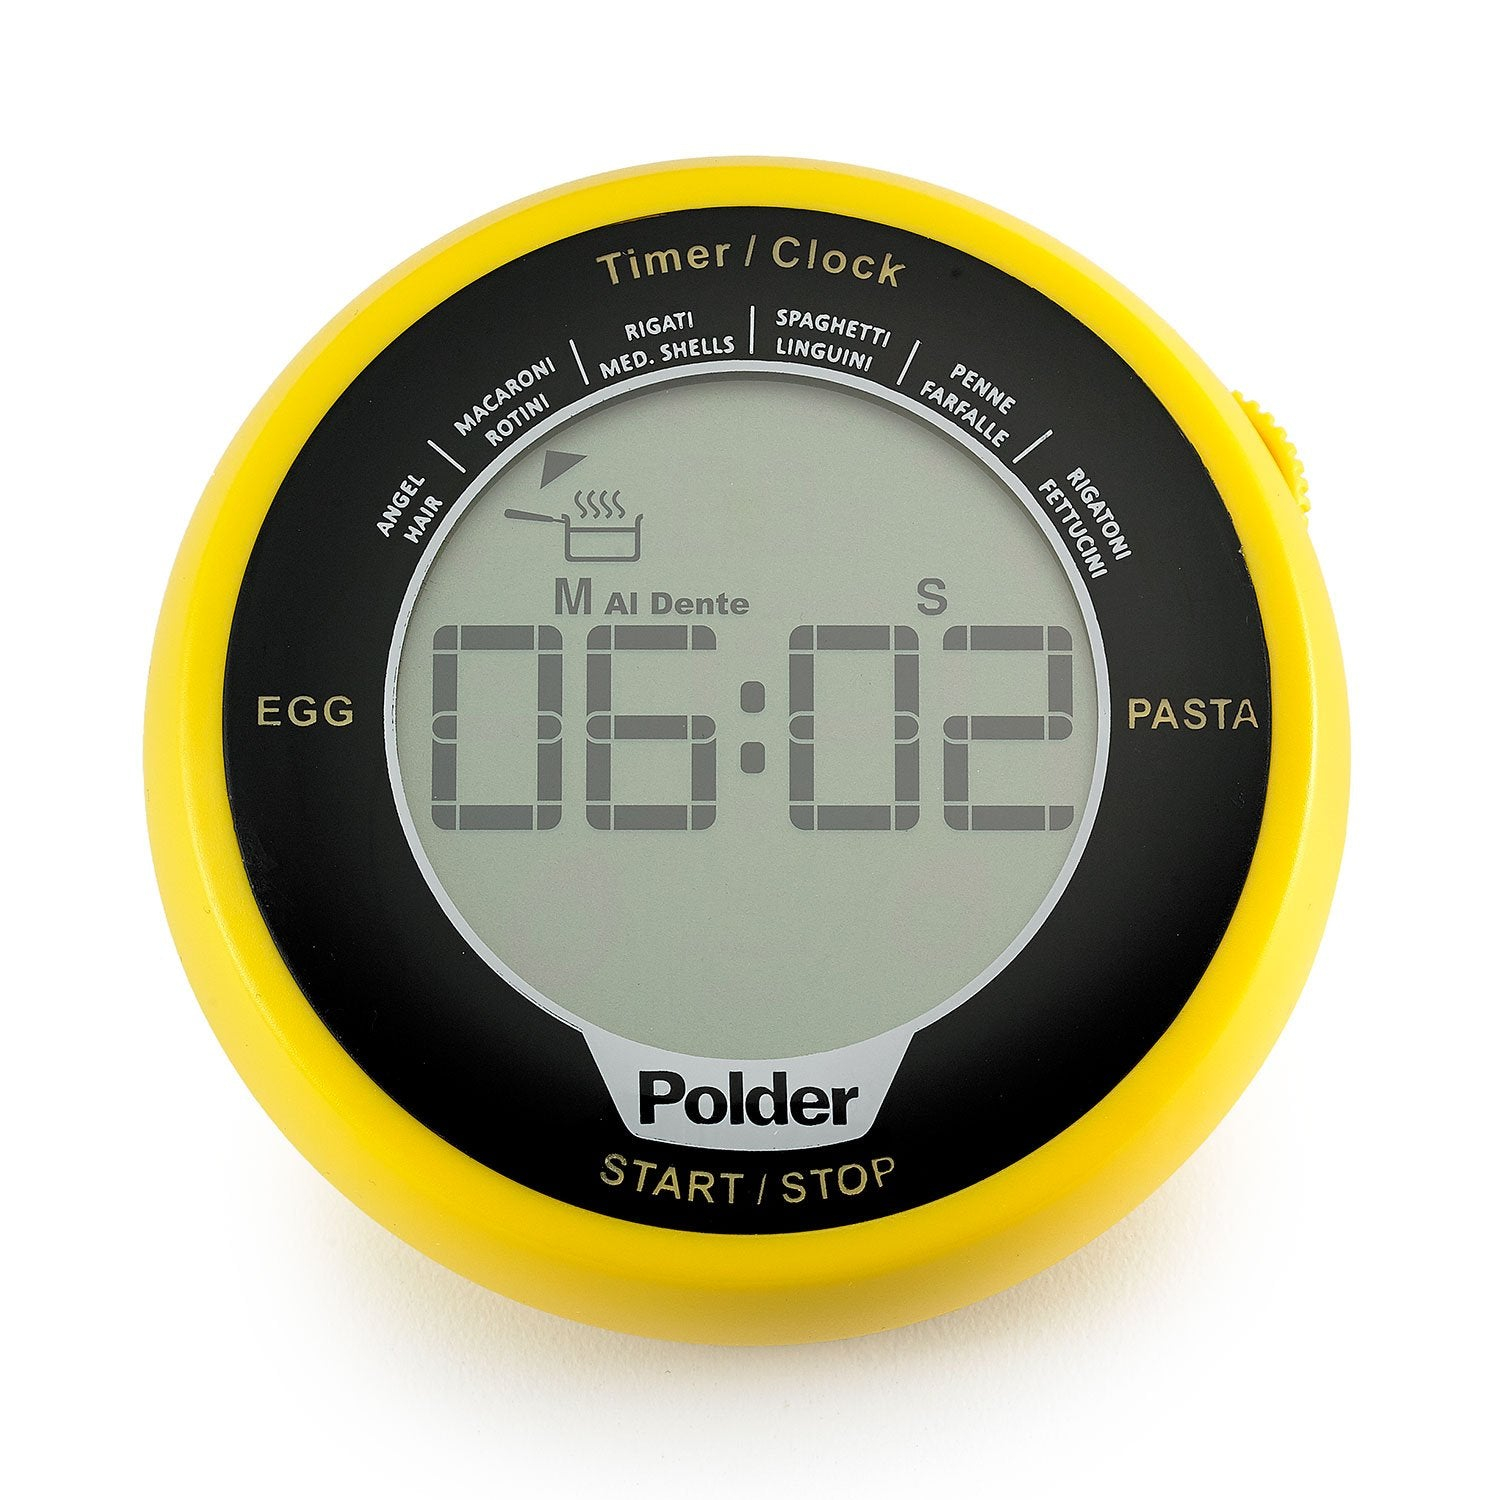 Digital Egg & Pasta Timer